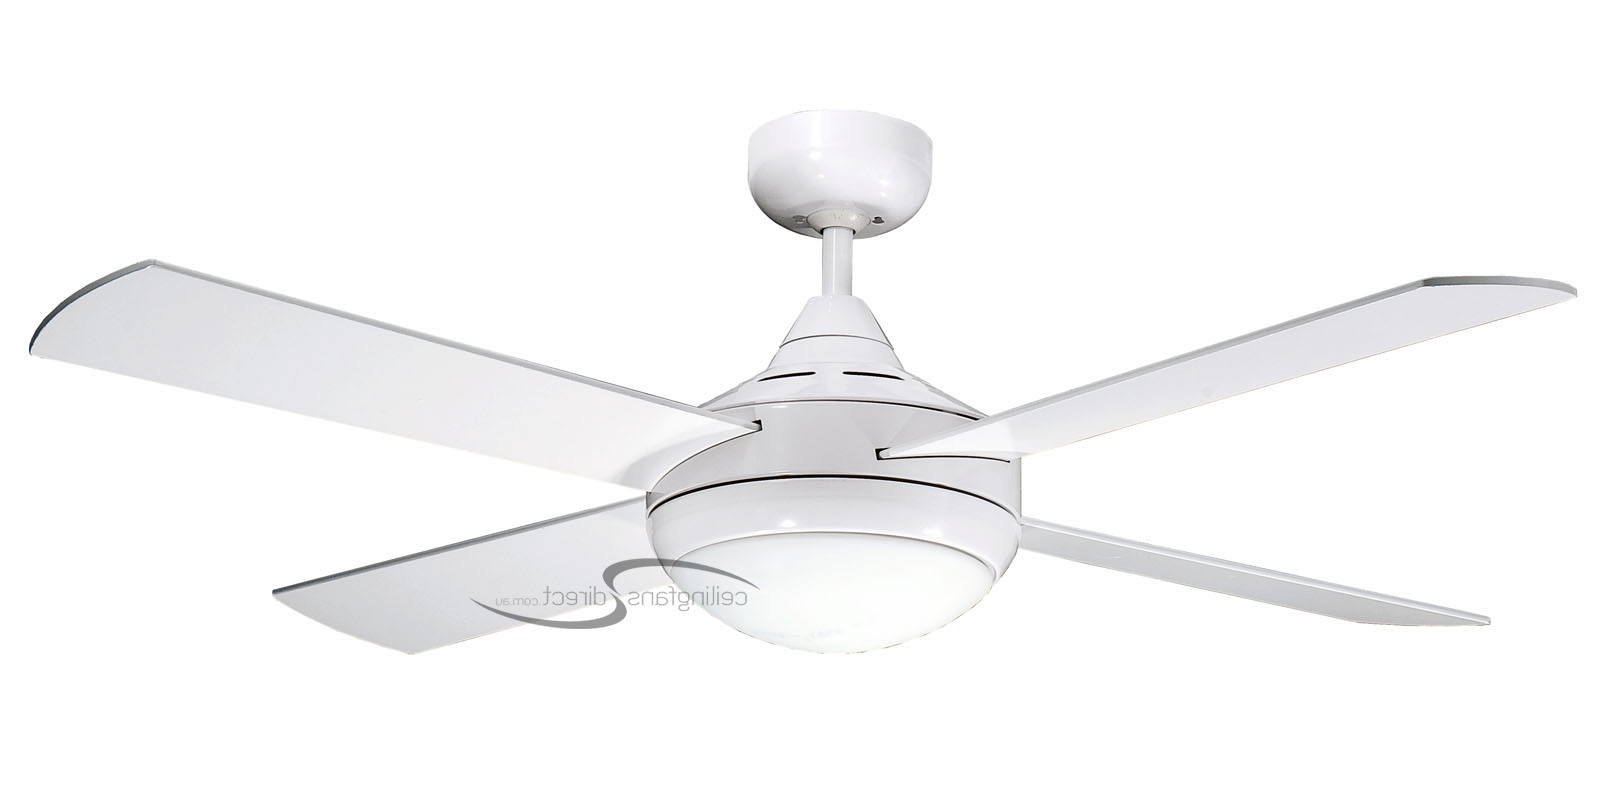 Fashionable White Ceiling Fans With Lights And Remote Control Perfect Outdoor With Outdoor Ceiling Fans With Light And Remote (View 15 of 20)